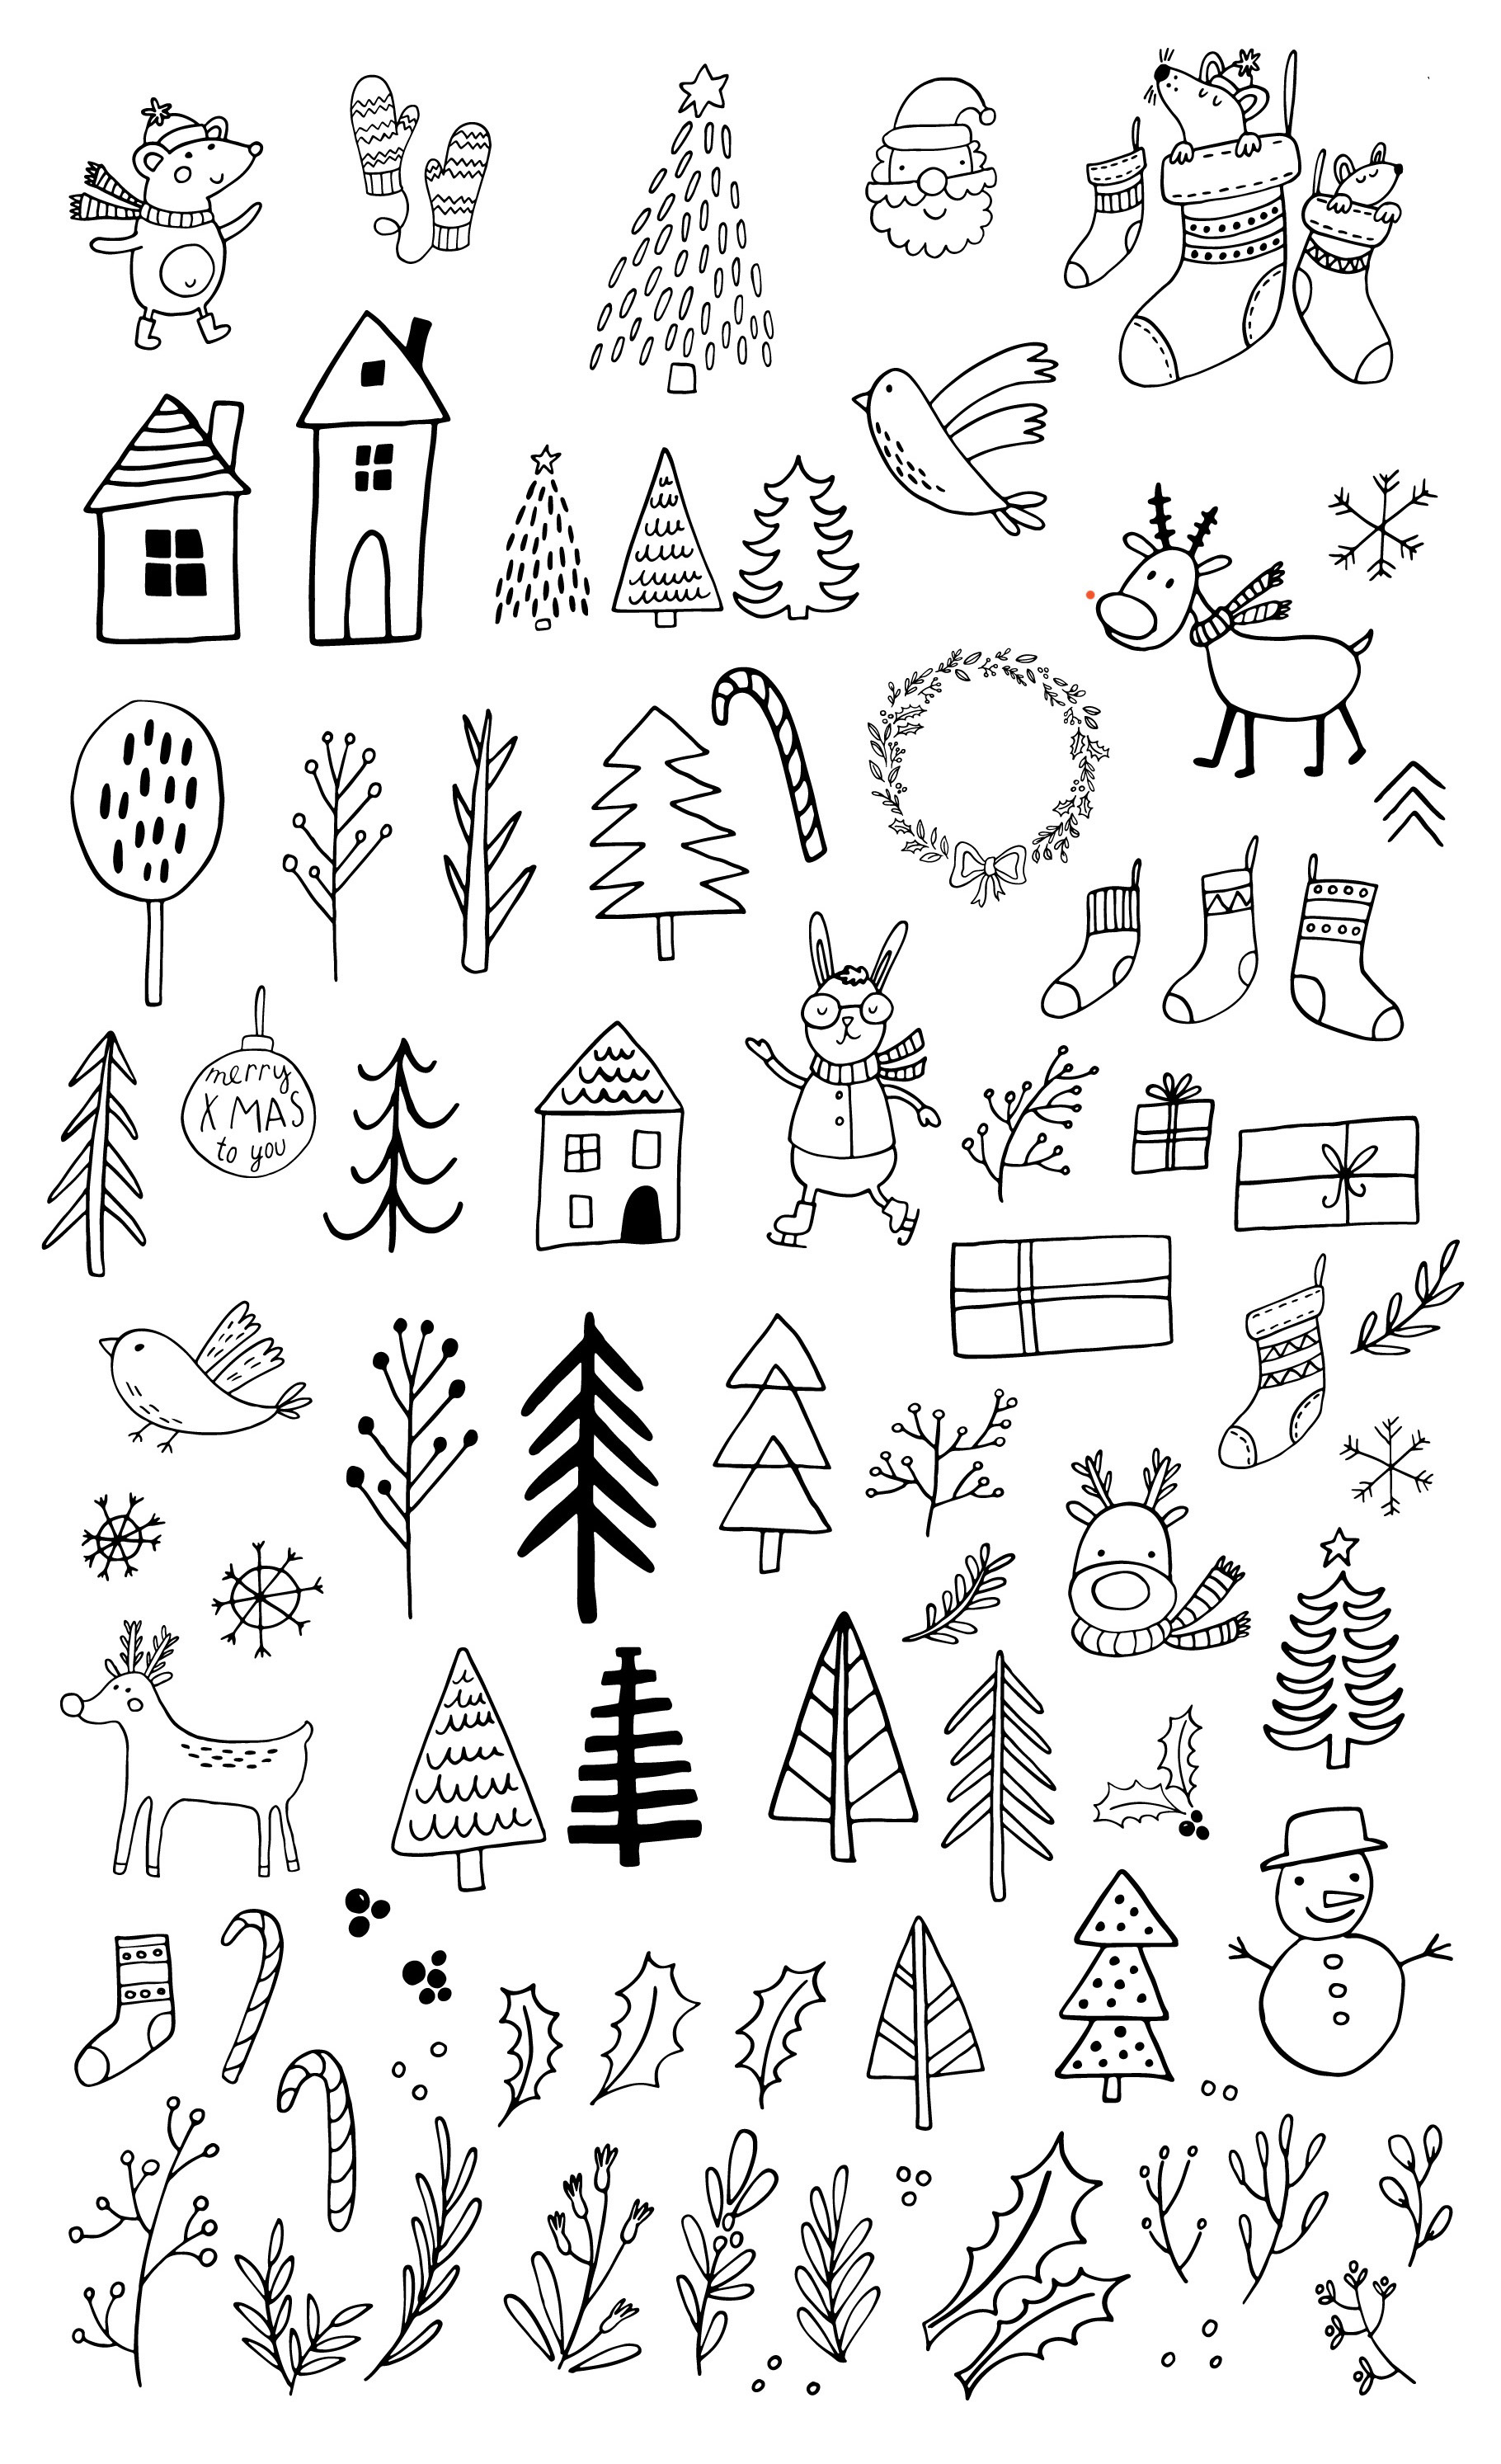 Cozy Christmas Clipart example image 11